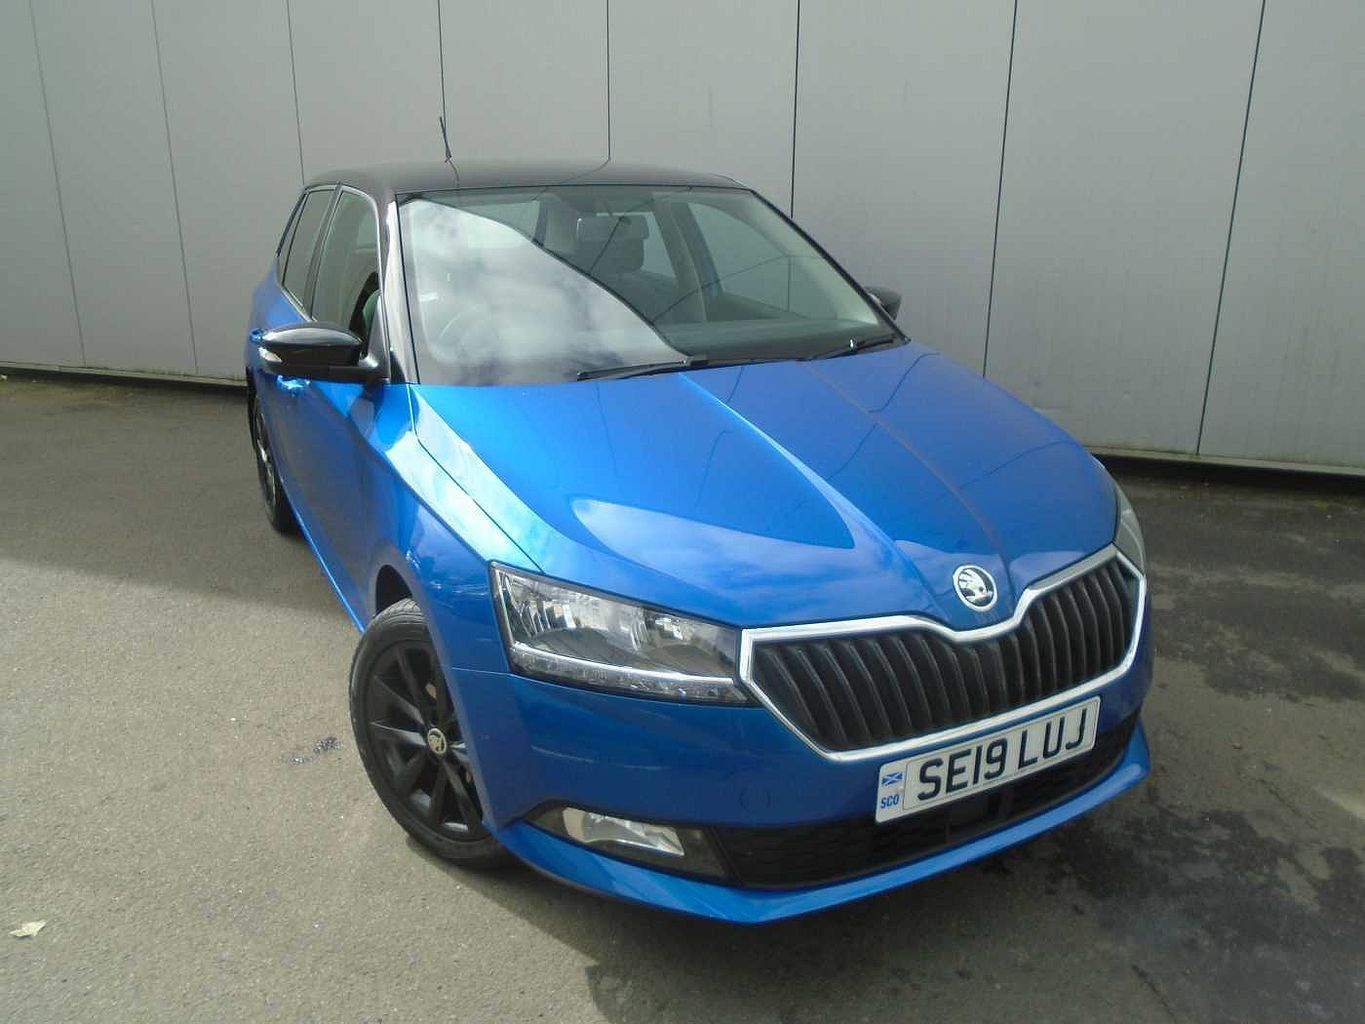 ŠKODA Fabia 1.0 TSI Colour Edition (95PS) 5-Dr Hatchback